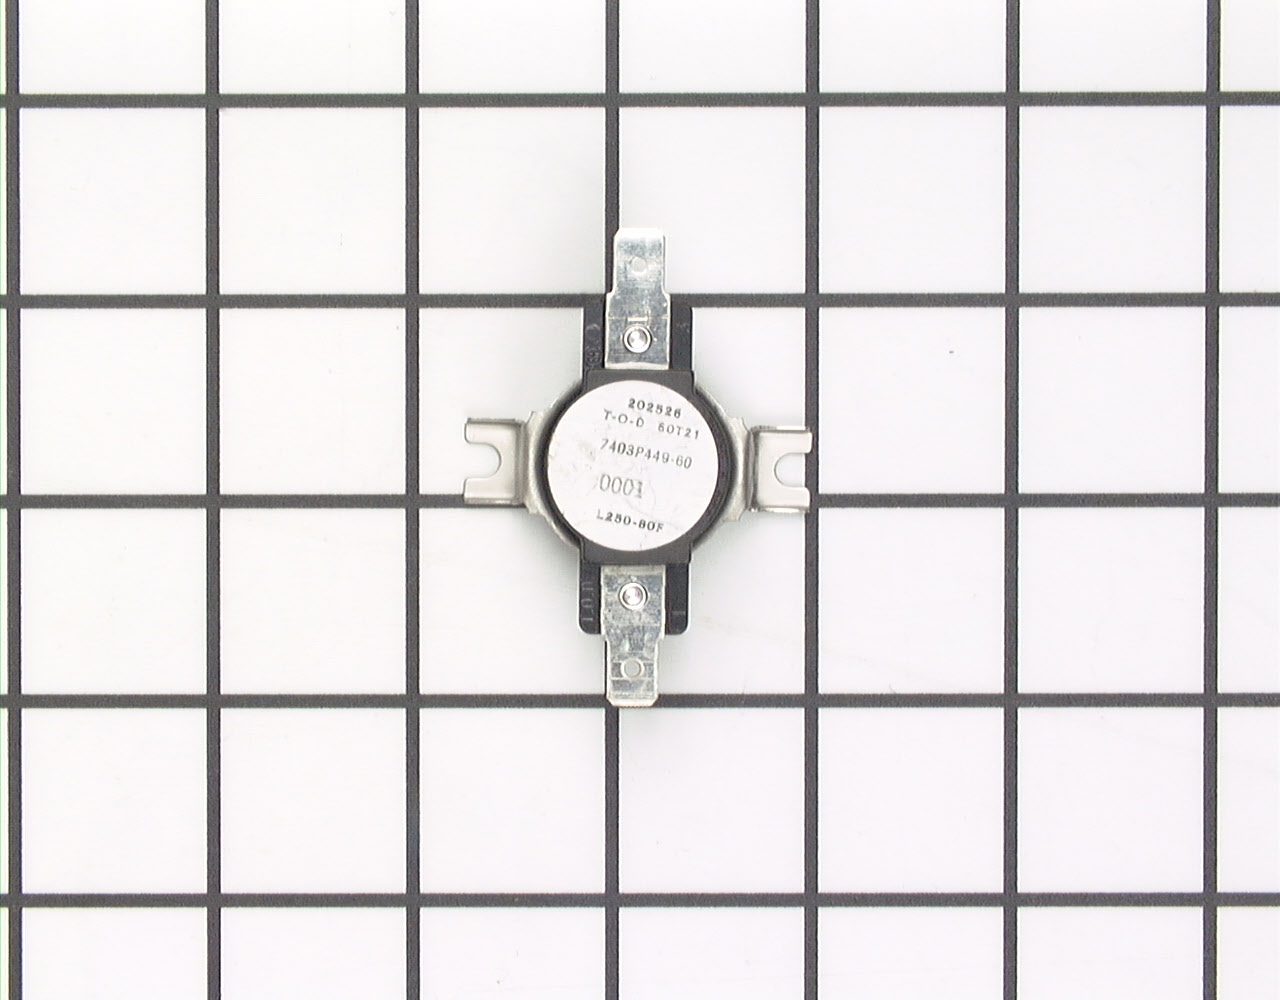 Kenmore Range/Stove/Oven Part # WP7403P899-60 - High Limit Thermostat